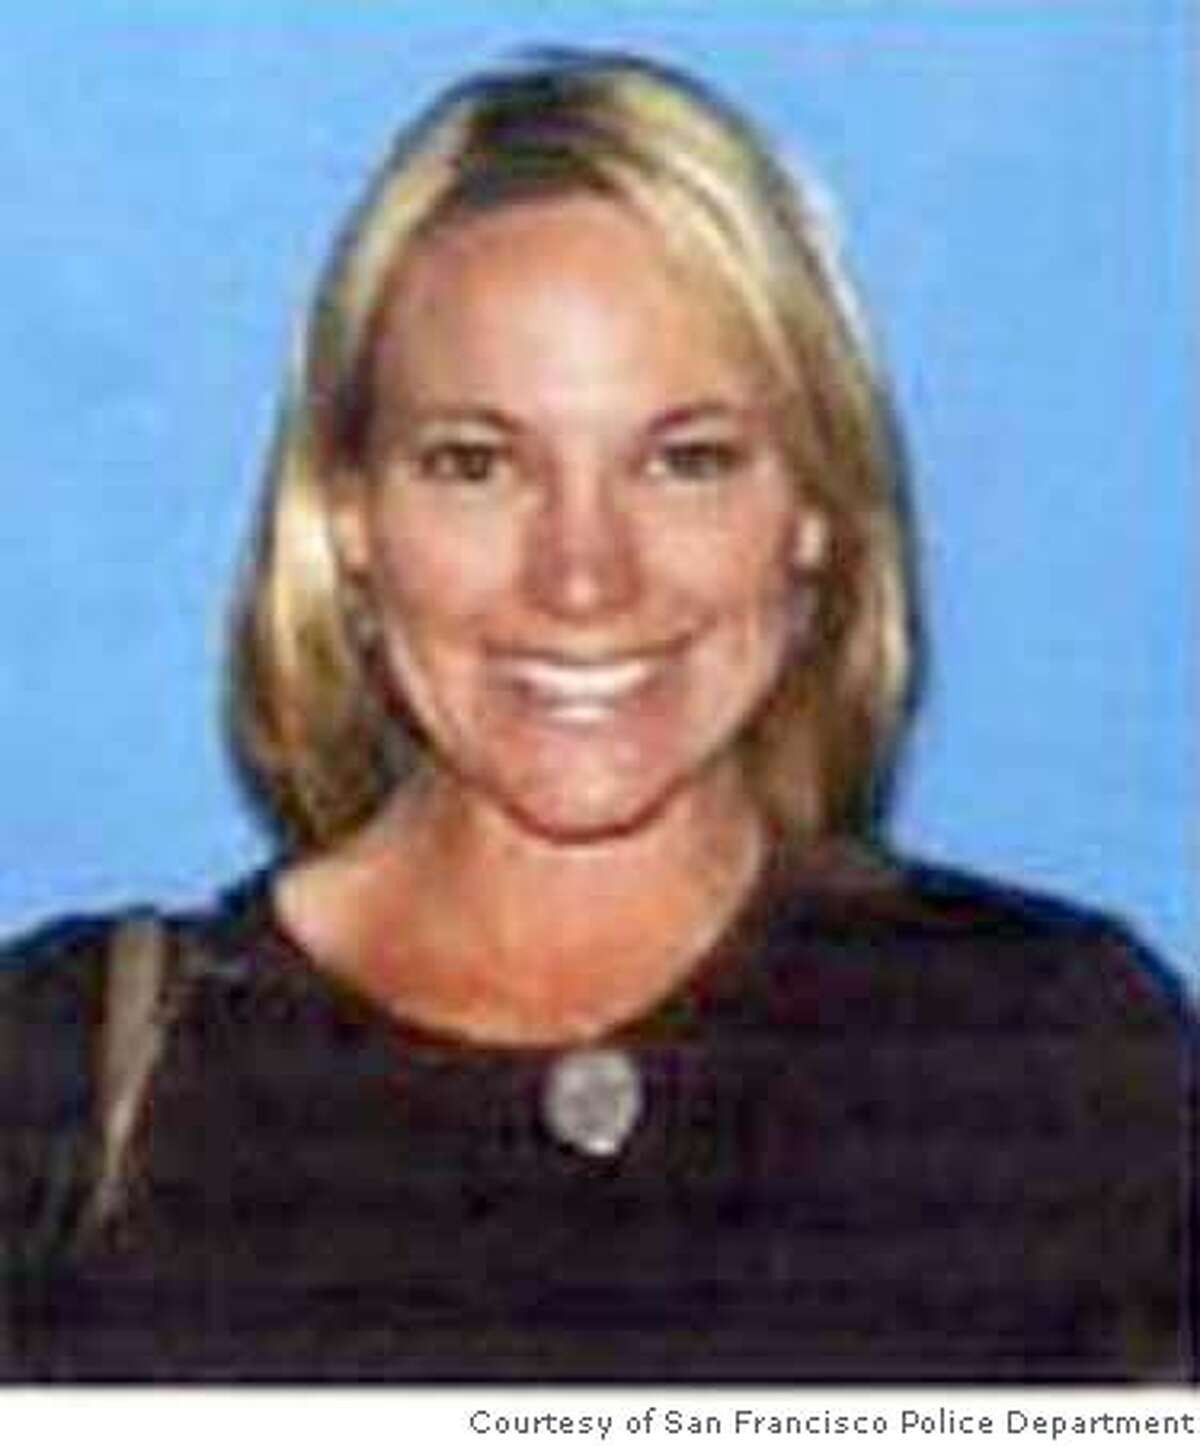 Undated handout image supplied by the San Francisco Police of Michelle Pinkerton, 38, a suspect in the death of Leonard Milo Hoskins, 49, of San Francisco, whose body San Francisco Police discovered in a van on February 1, 2008. San Francisco Police Homicide inspectors obtained a $5 million arrest warrant for Richard Carelli, 38, and a $1 million arrest warrant for Pinkerton. Courtesy of Ran on: 02-14-2008 Leonard Milo Hoskins Ran on: 02-14-2008 Leonard Milo Hoskins Ran on: 02-15-2008 Richard Carelli Ran on: 02-15-2008 Ran on: 02-15-2008 Ran on: 02-15-2008 Ran on: 02-15-2008 Ran on: 02-15-2008